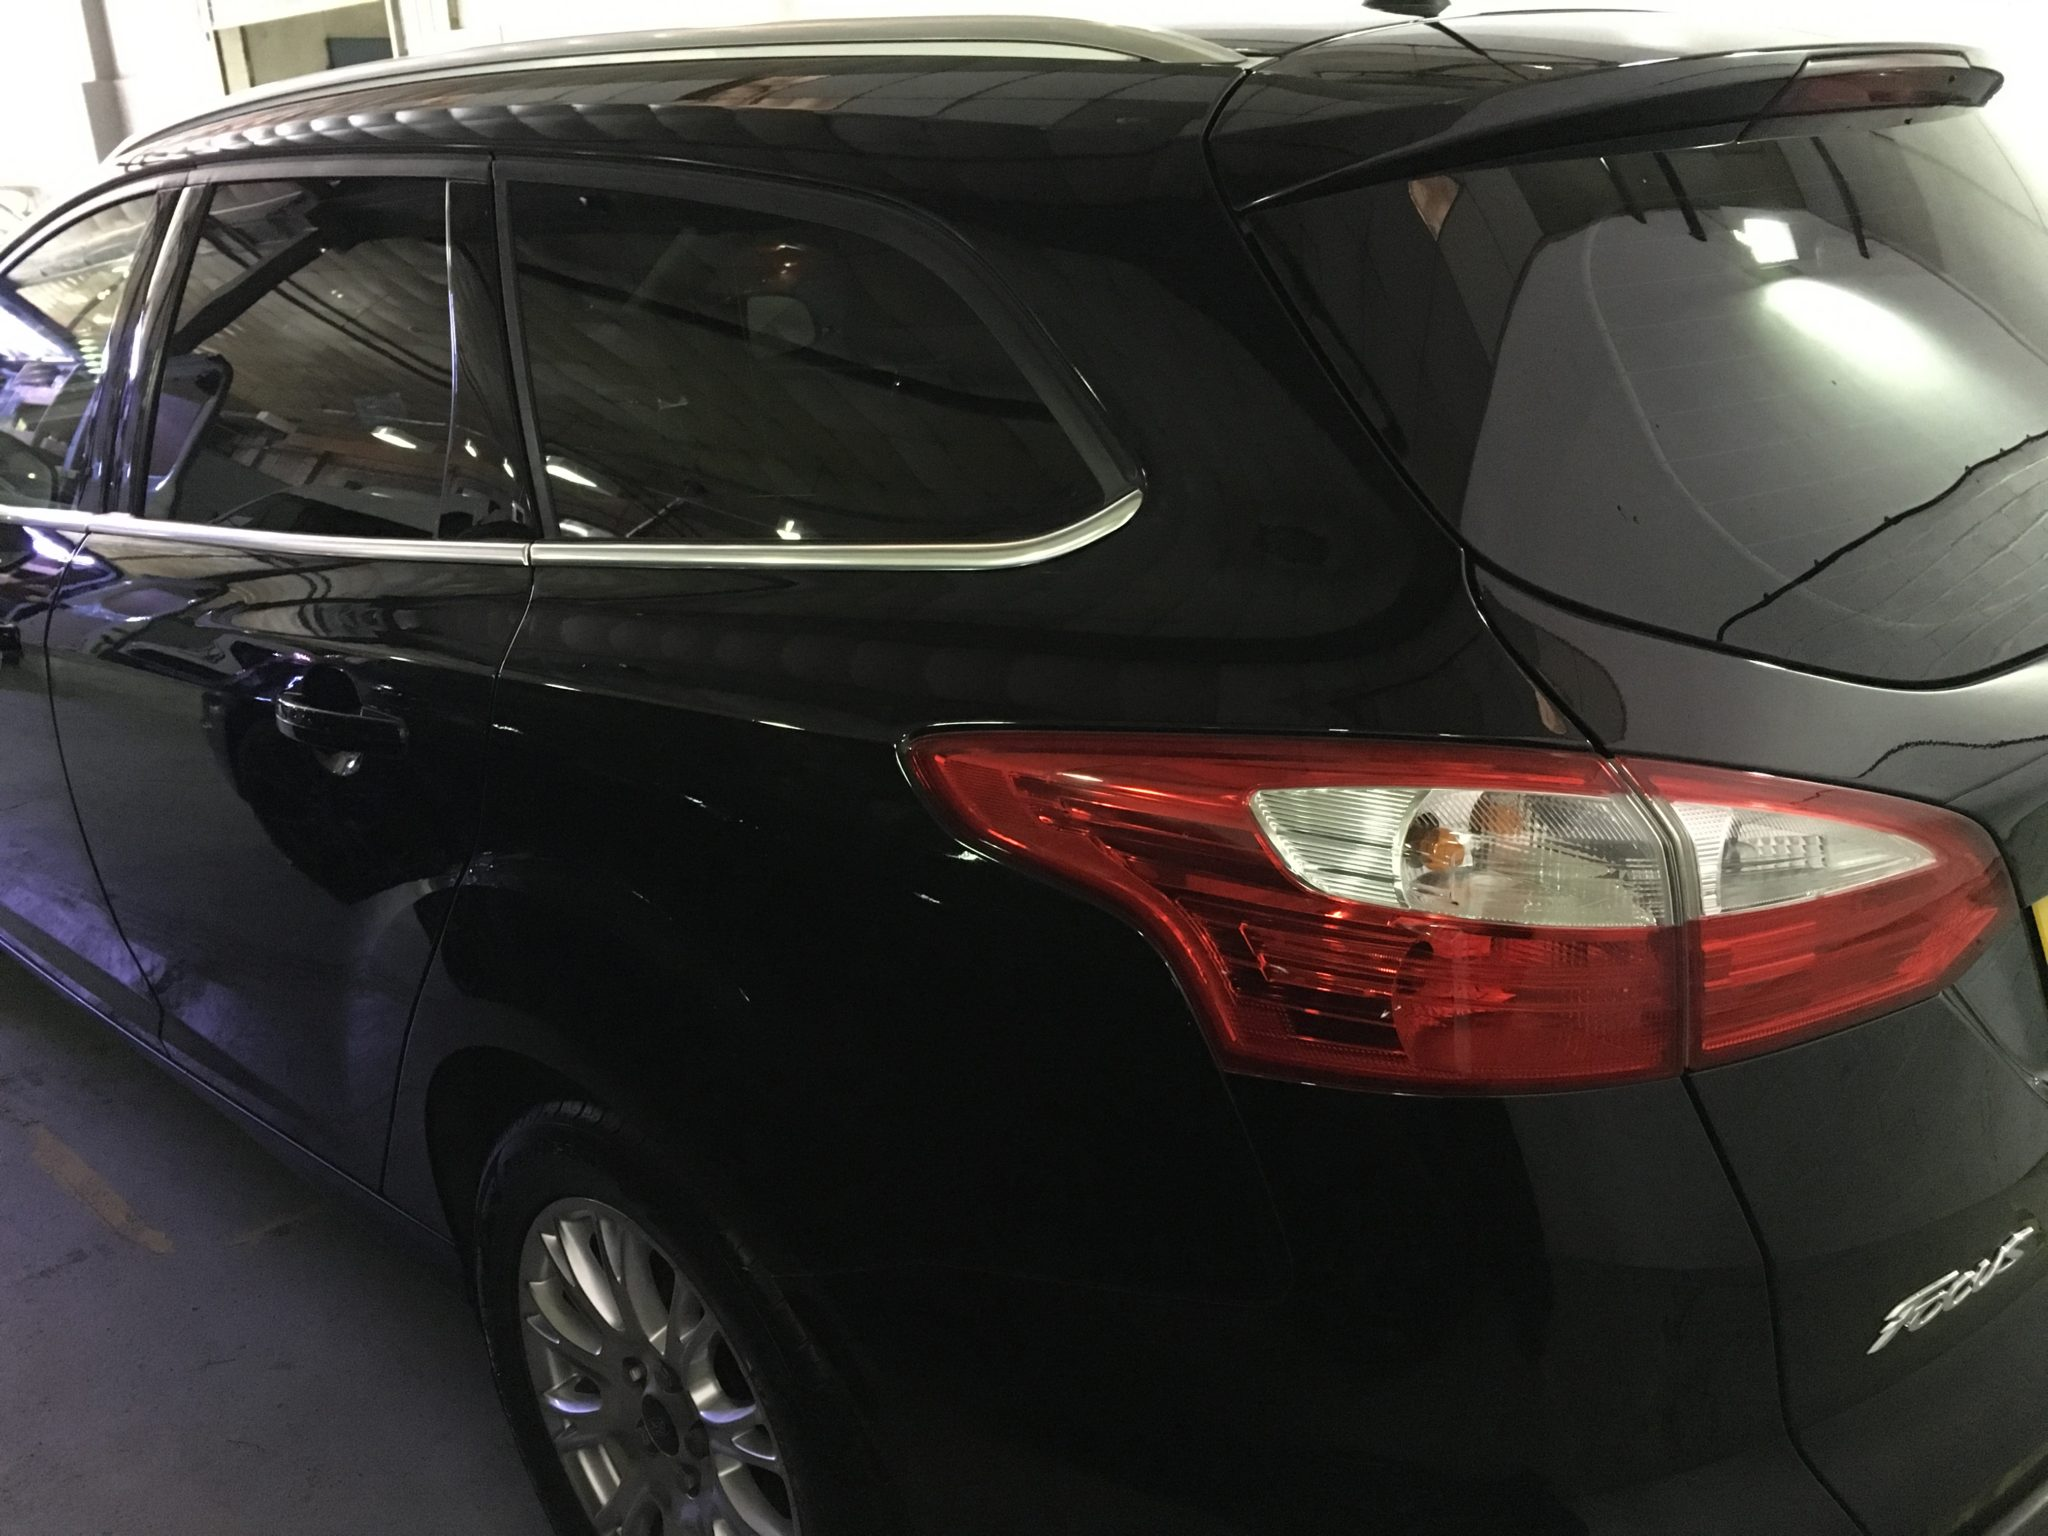 Ford Focus Window Tinting Limo Black